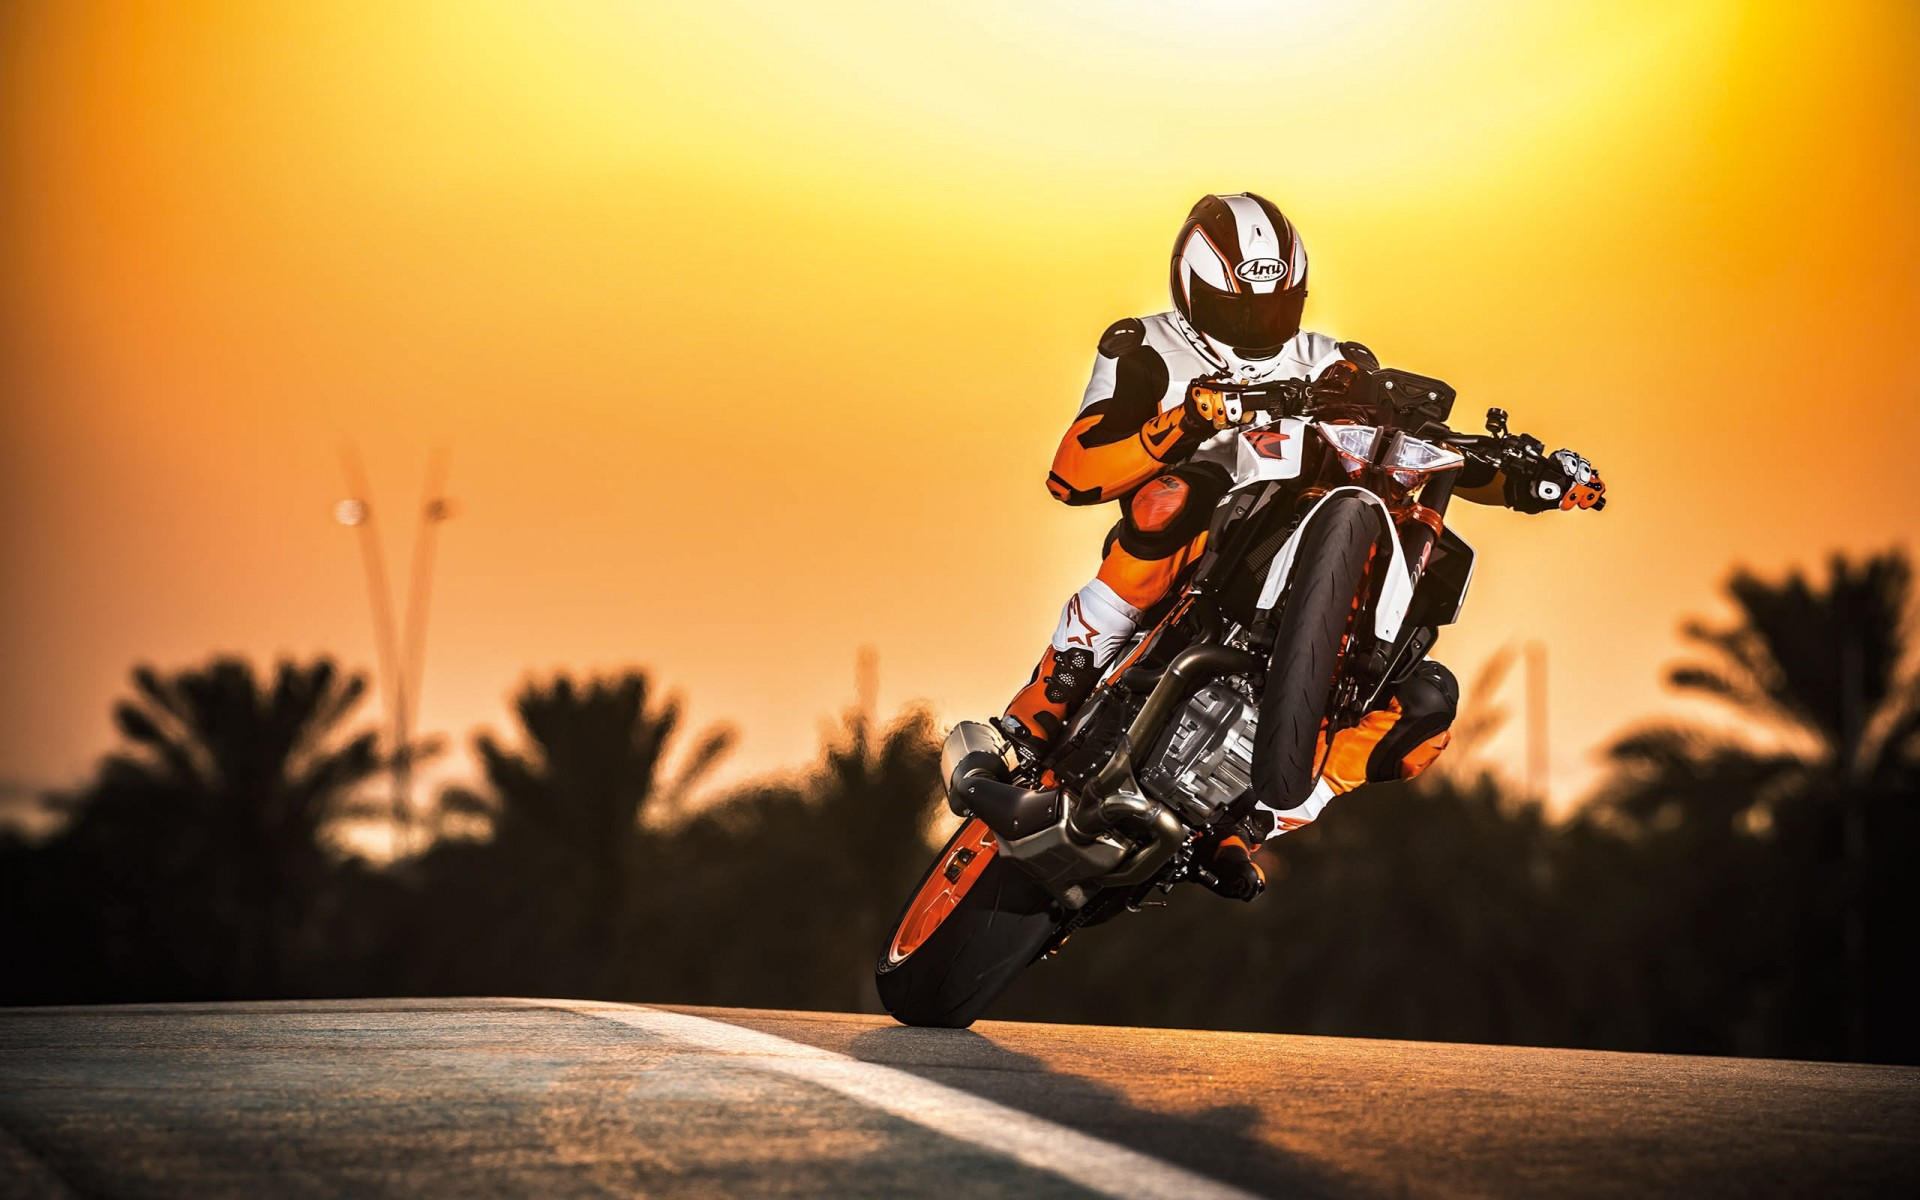 Super Hd Wallpapers For Iphone 7 Plus 2017 Ktm 1290 Super Duke R Stunt Wallpapers Hd